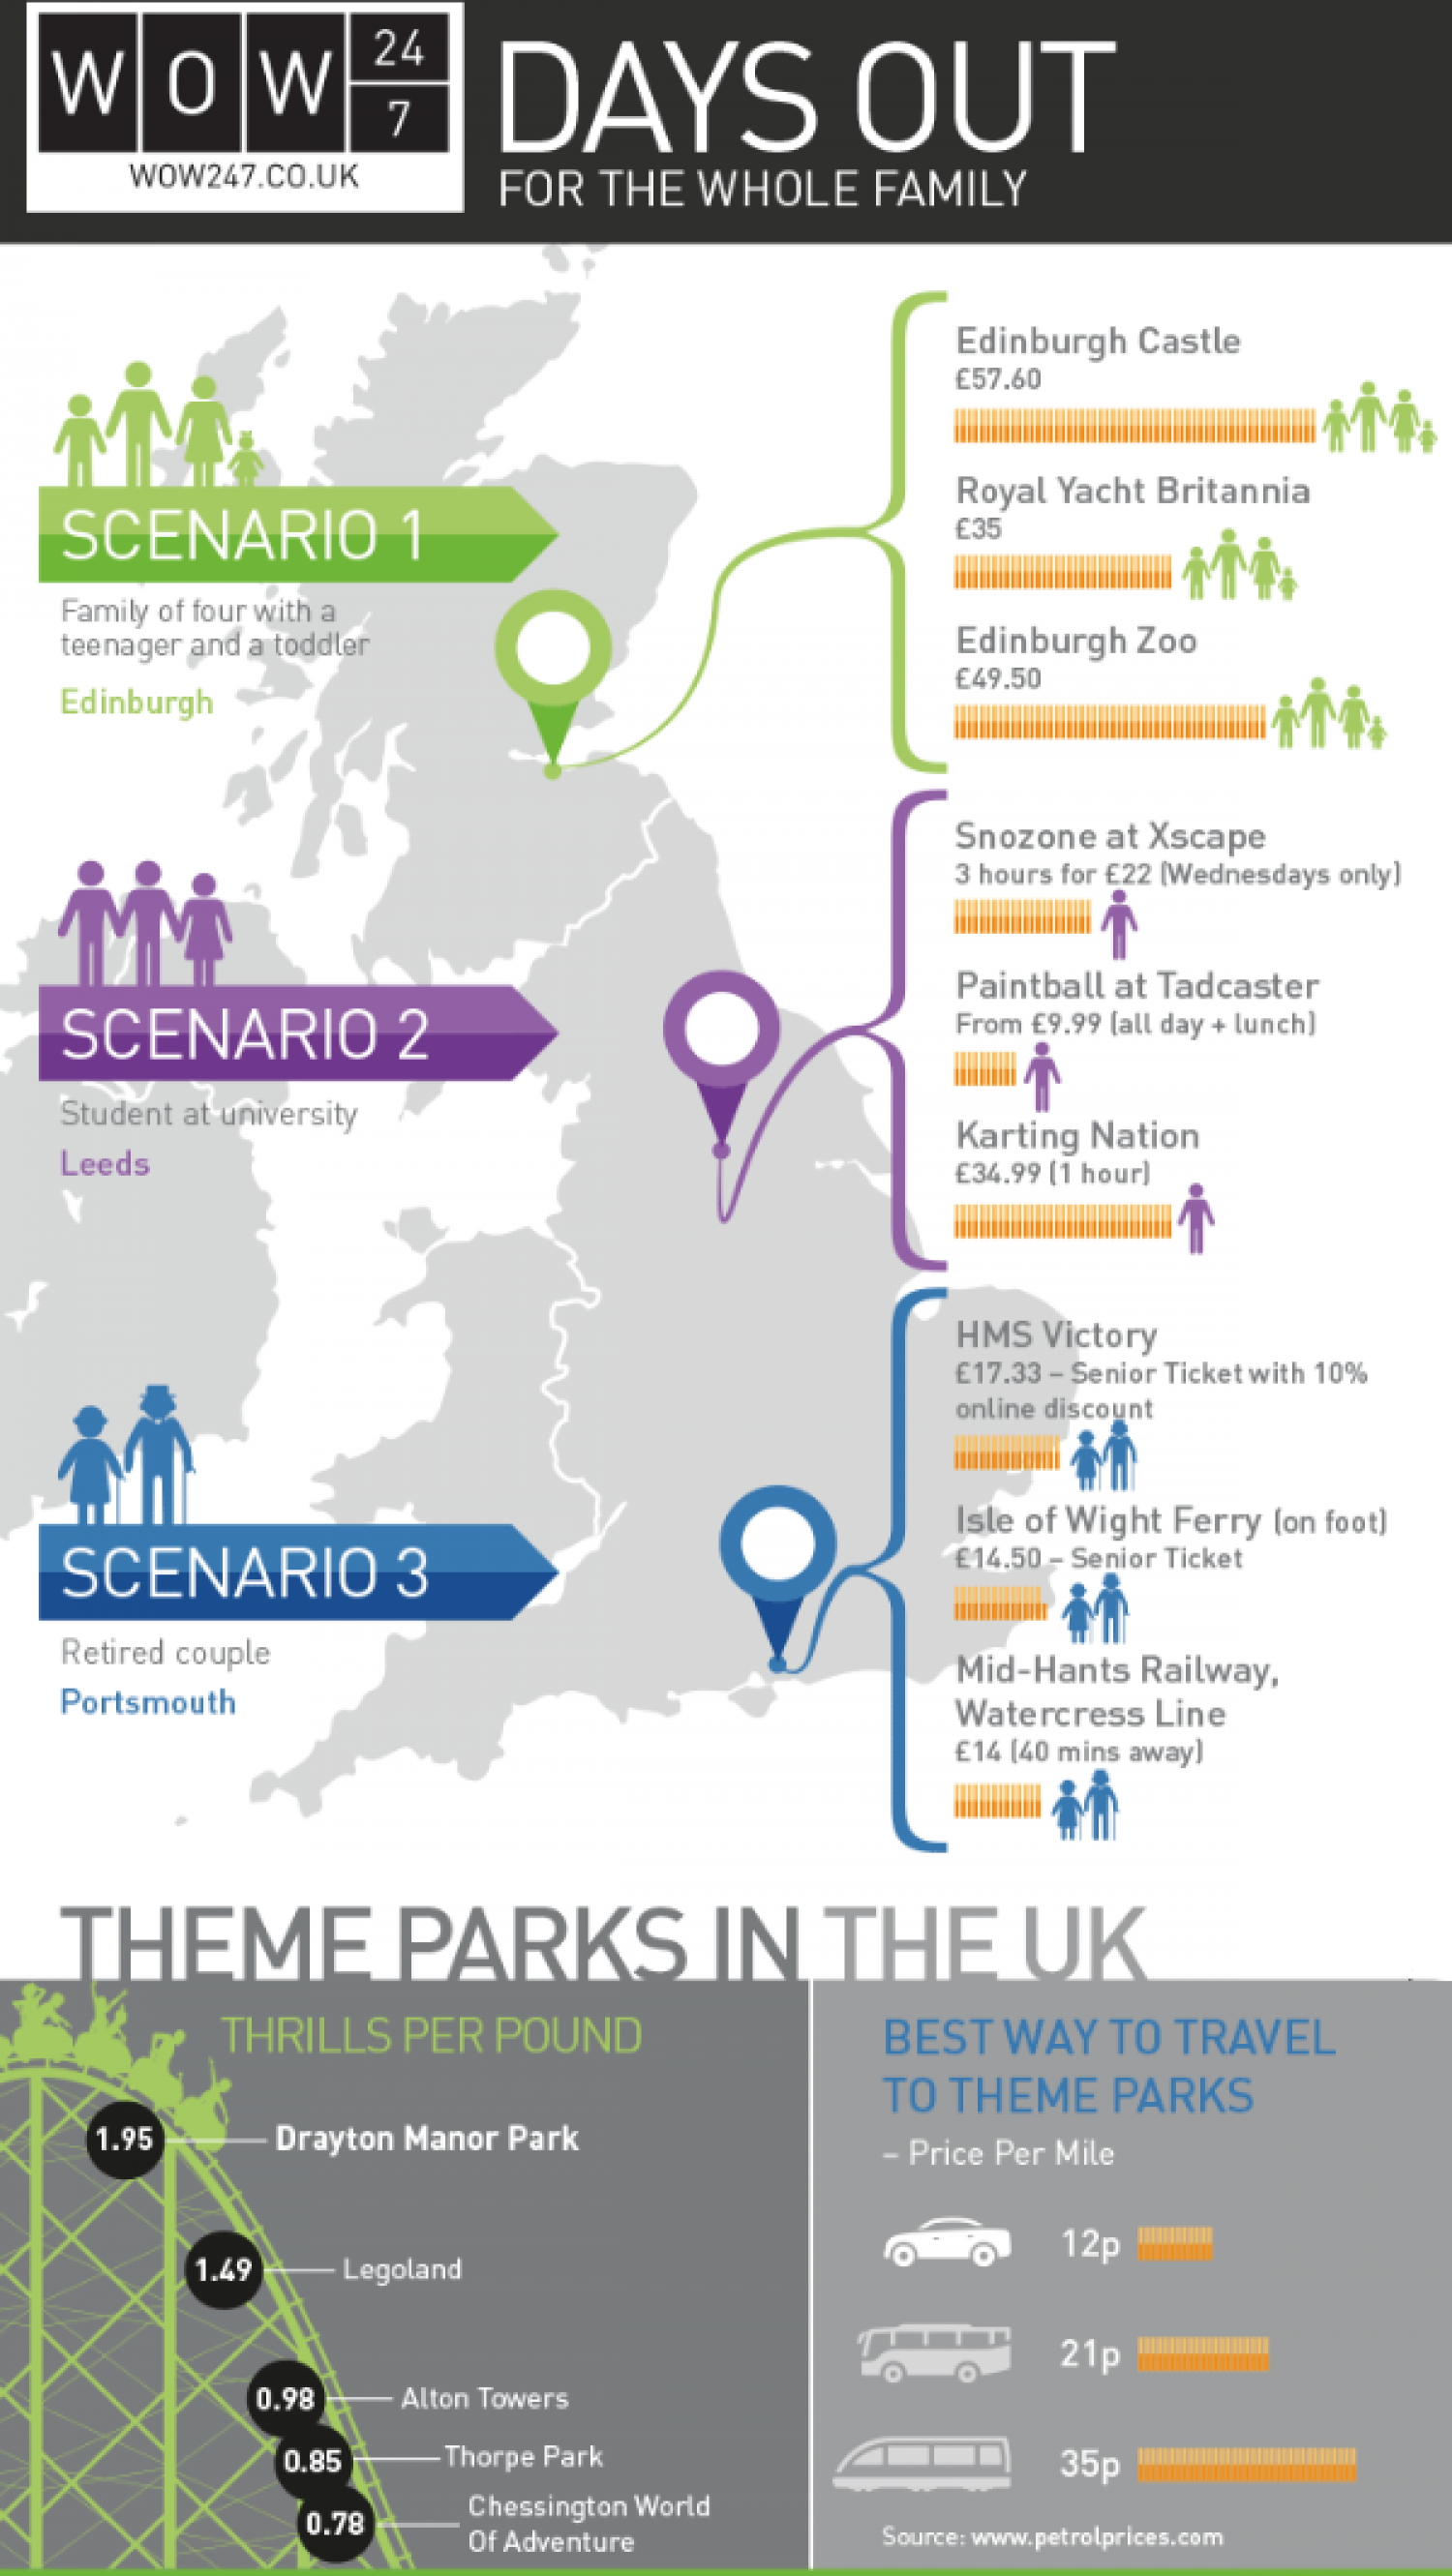 Days Out For The Whole Family Infographic